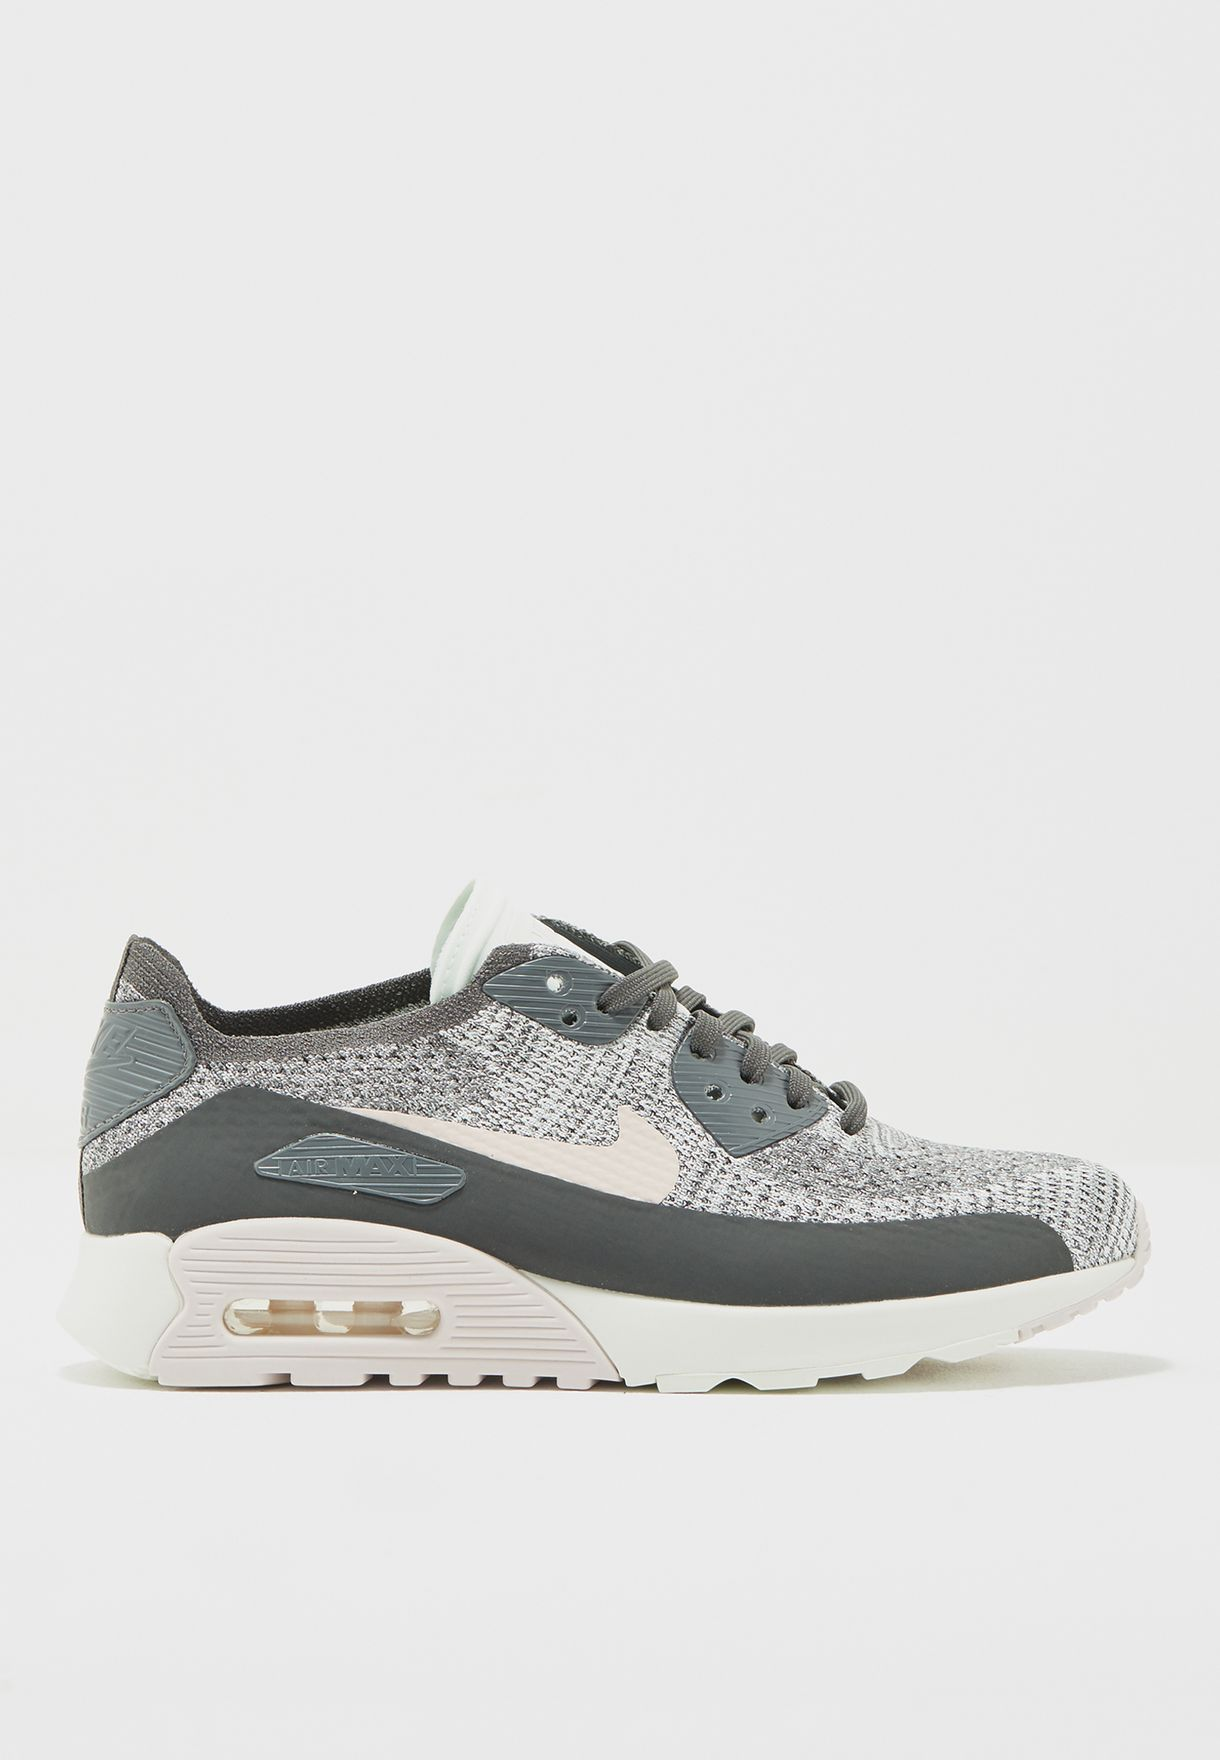 a7c5fd70ce9c Shop Nike multicolor Air Max 90 Ultra 2.0 Flyknit 881109-003 for ...